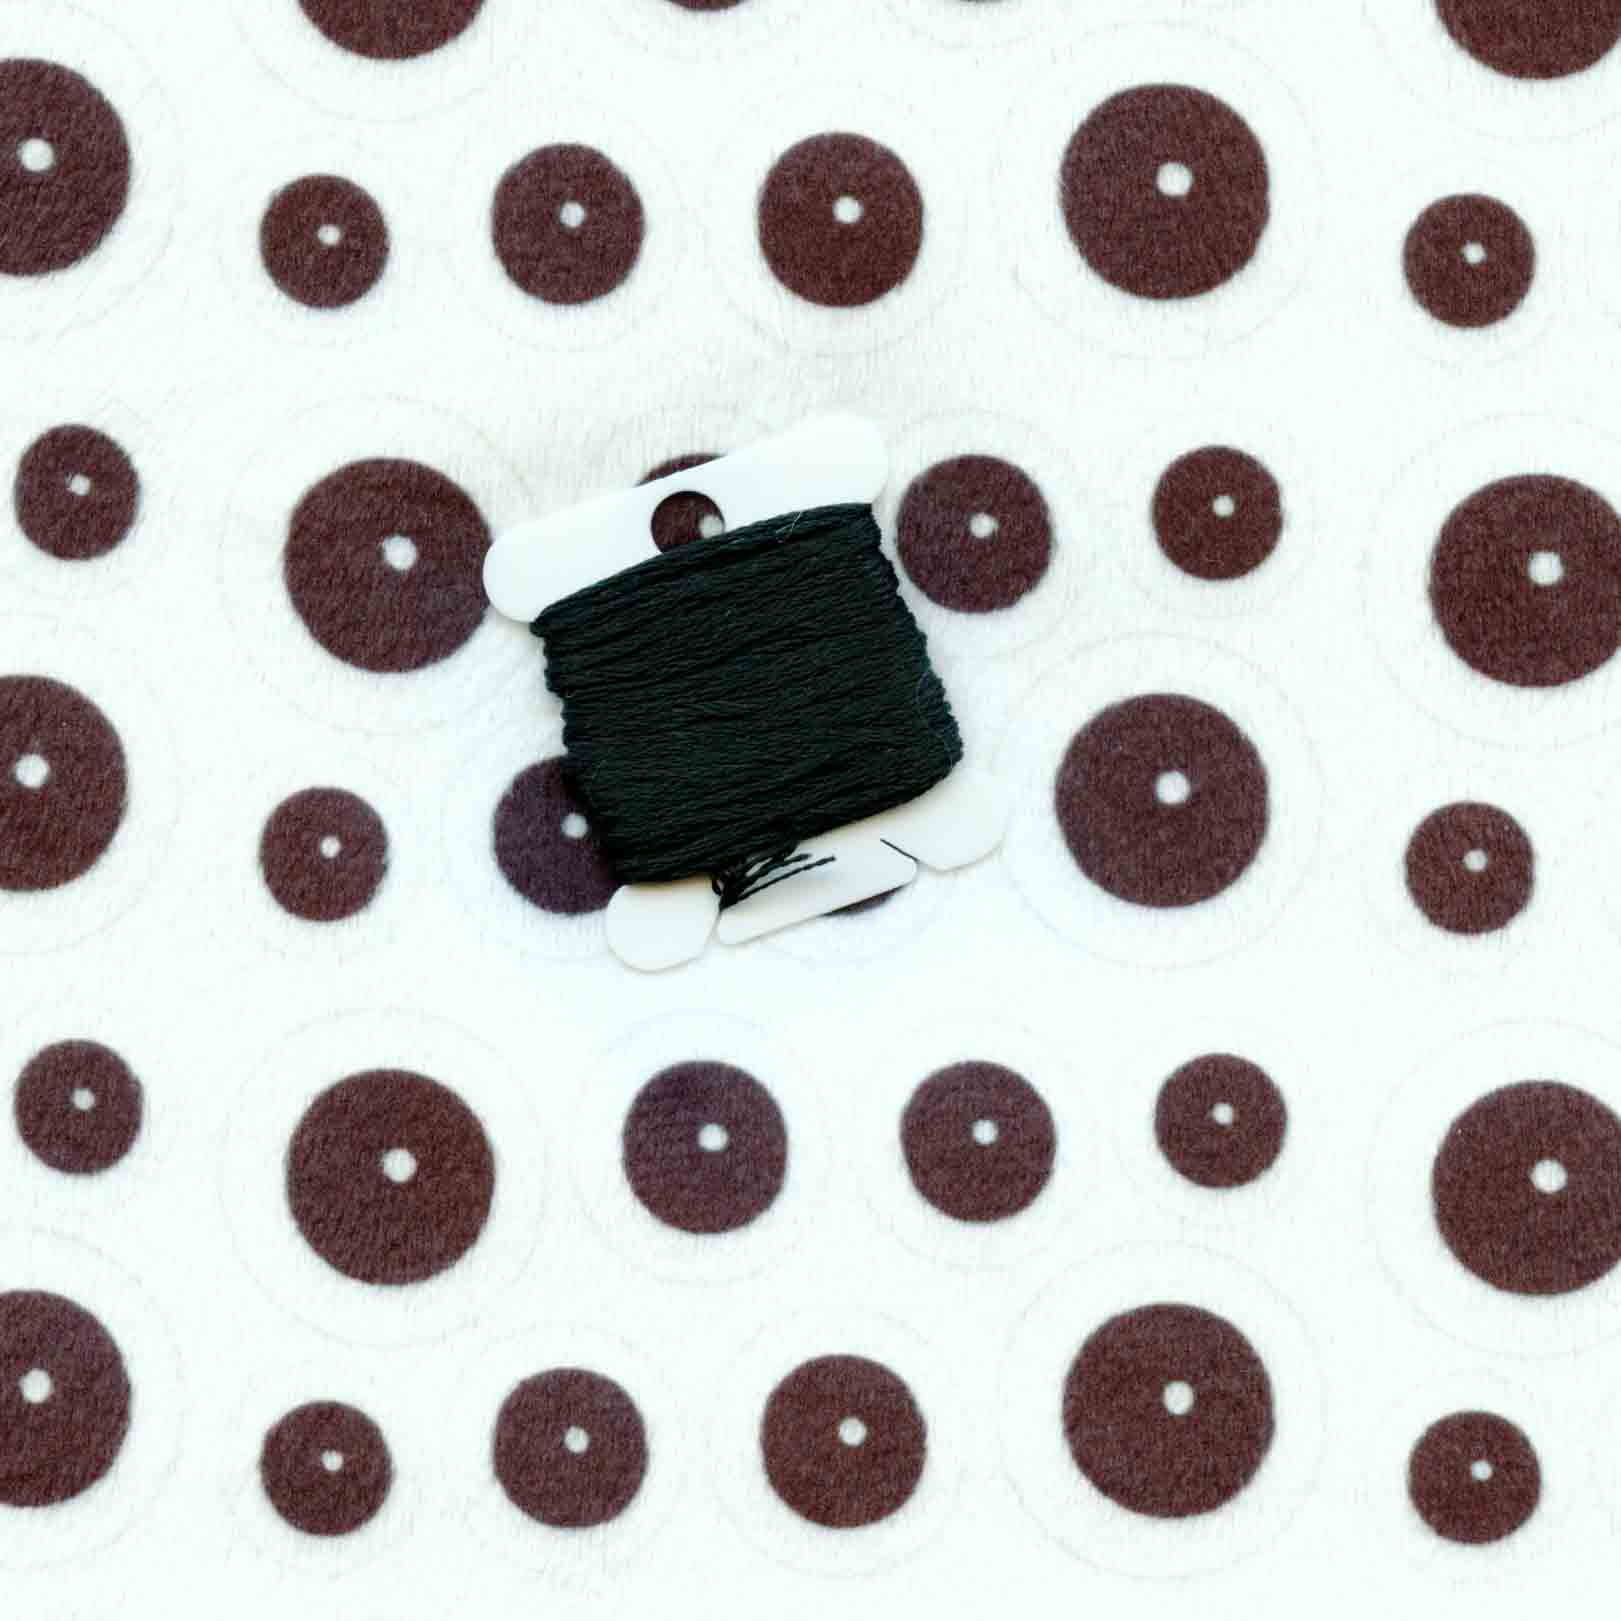 Spoonflower Minky eyeballs compared to black